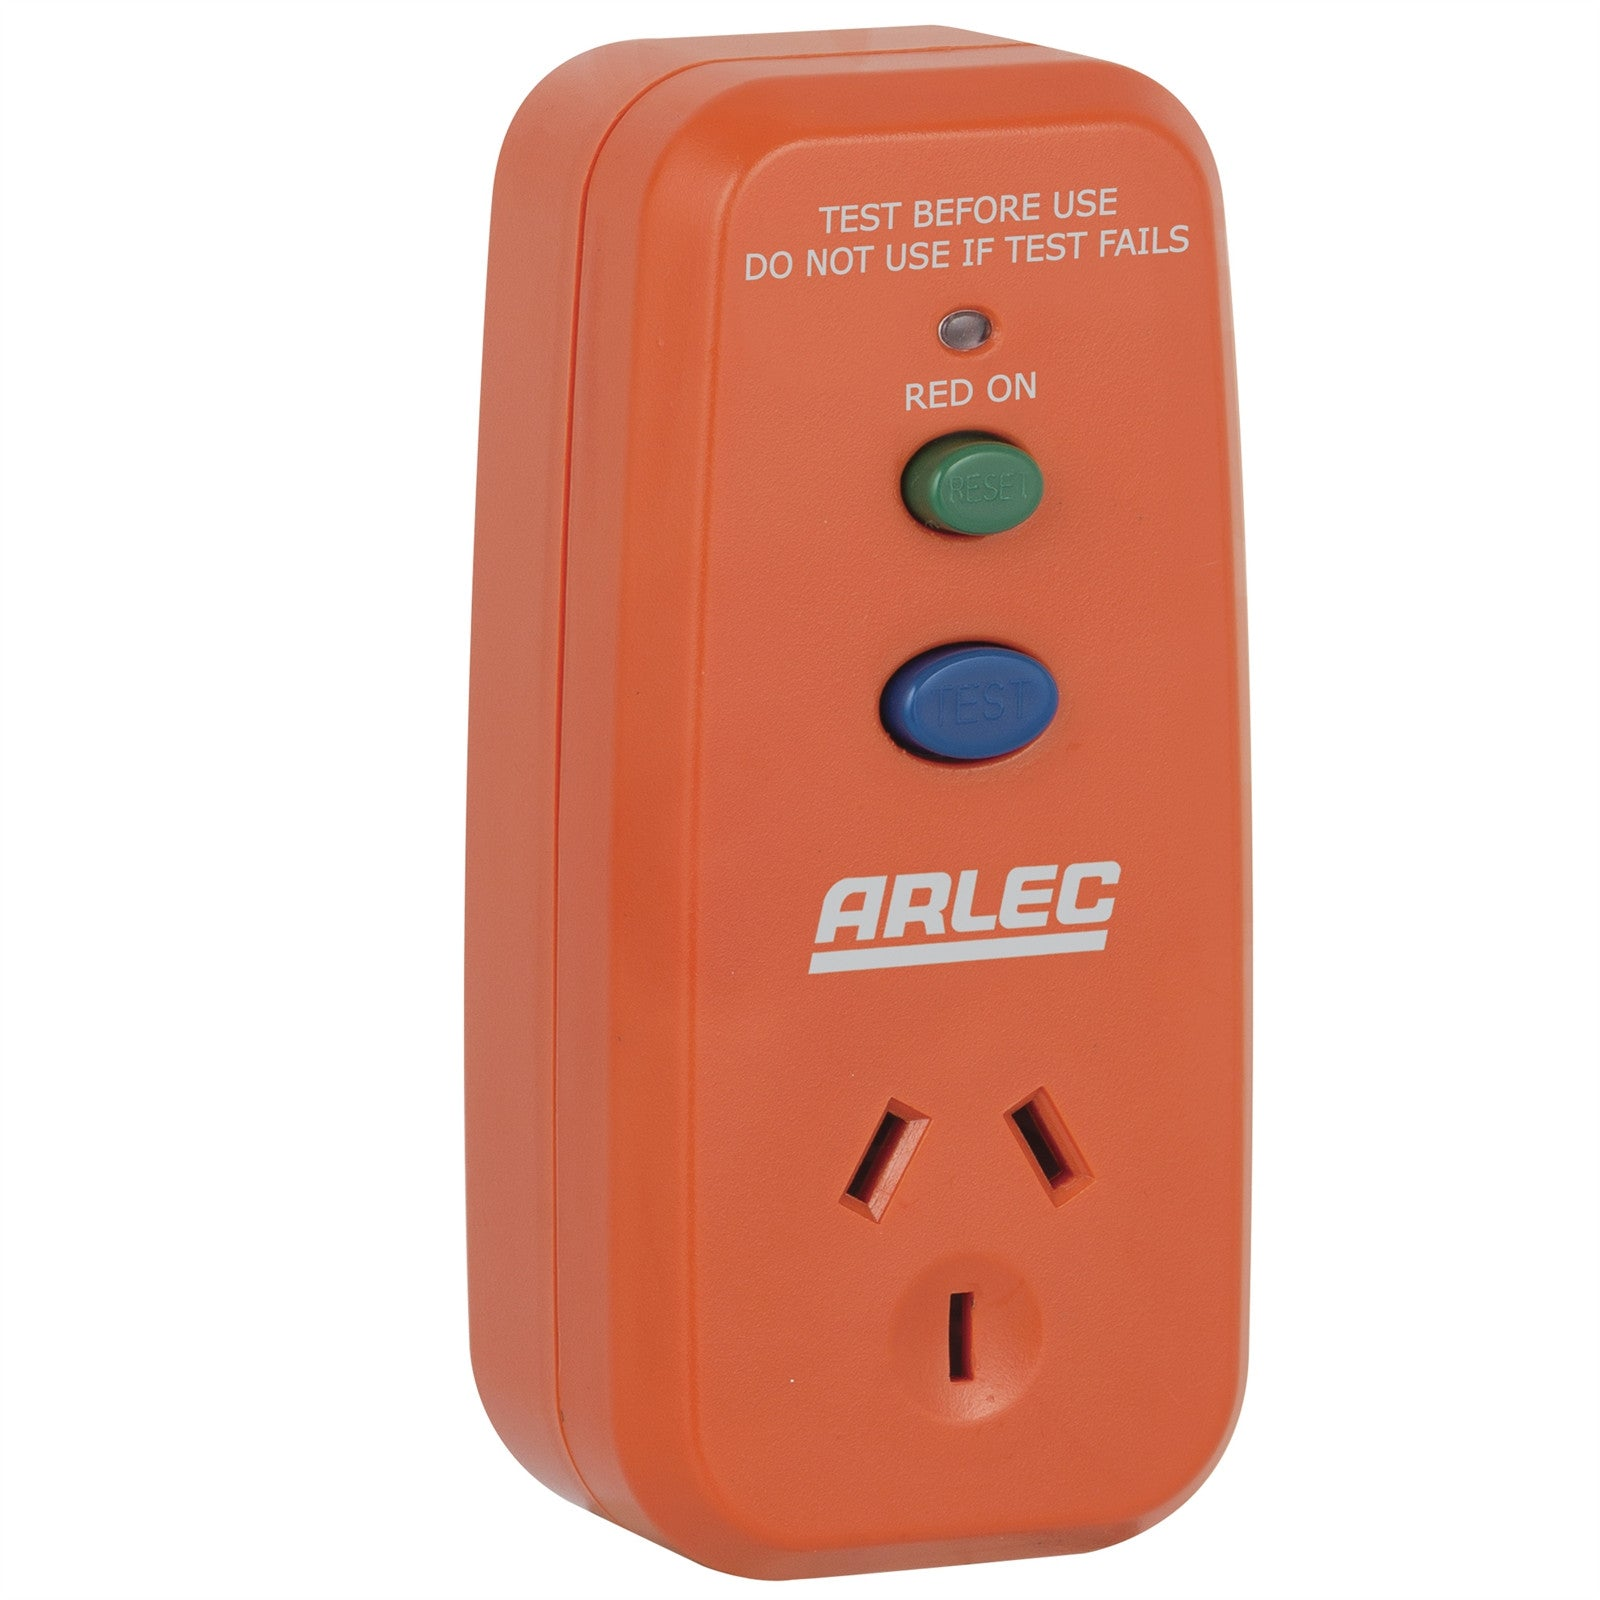 Arlec ARLEC Single Outlet Safety Switch - PB91 - BNR Industrial